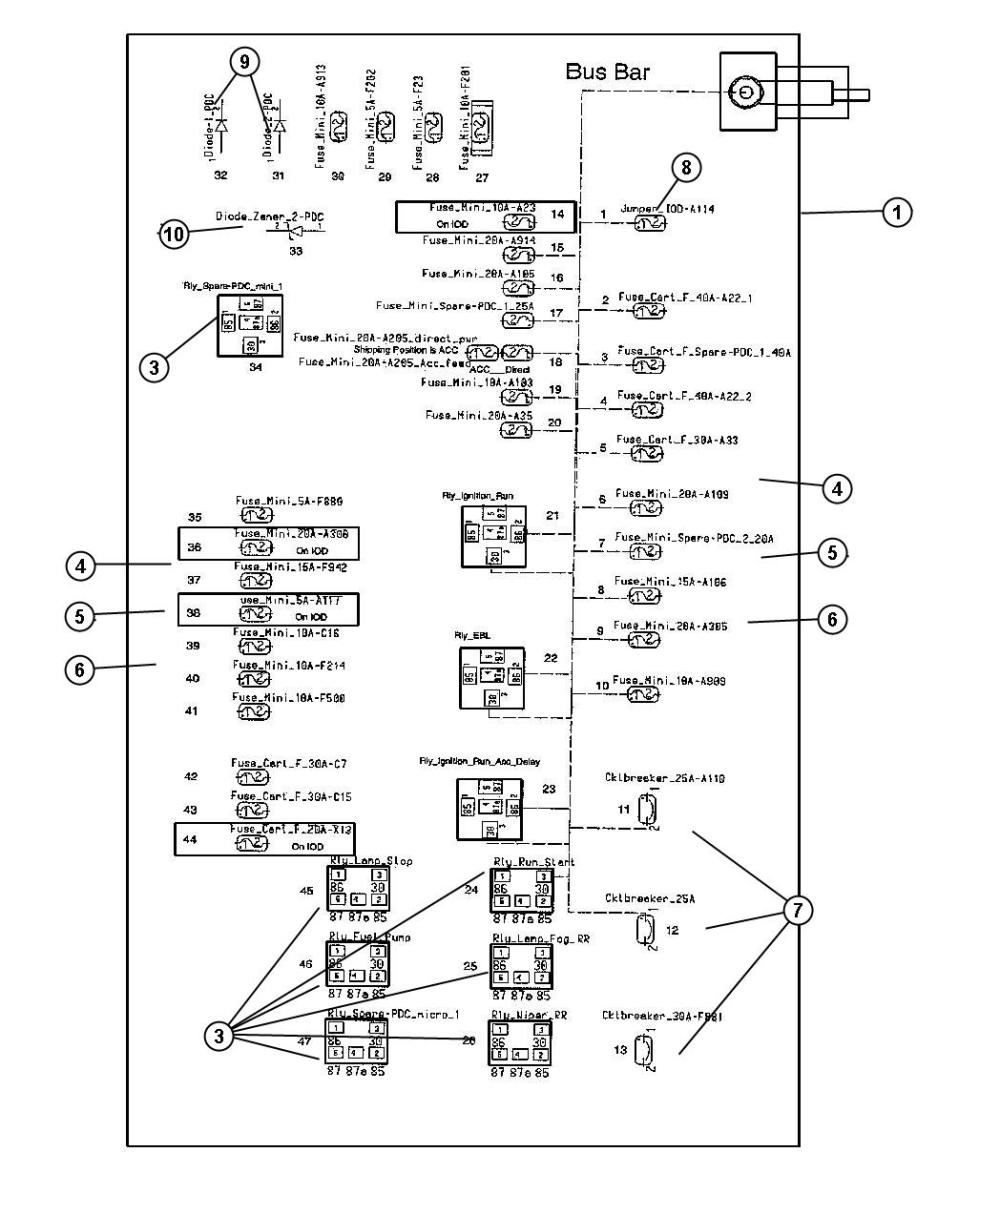 medium resolution of 2005 300c fuse diagram wiring diagrams 2007 chrysler 300 fuse chart chrysler 300 fuse box diagram pdf